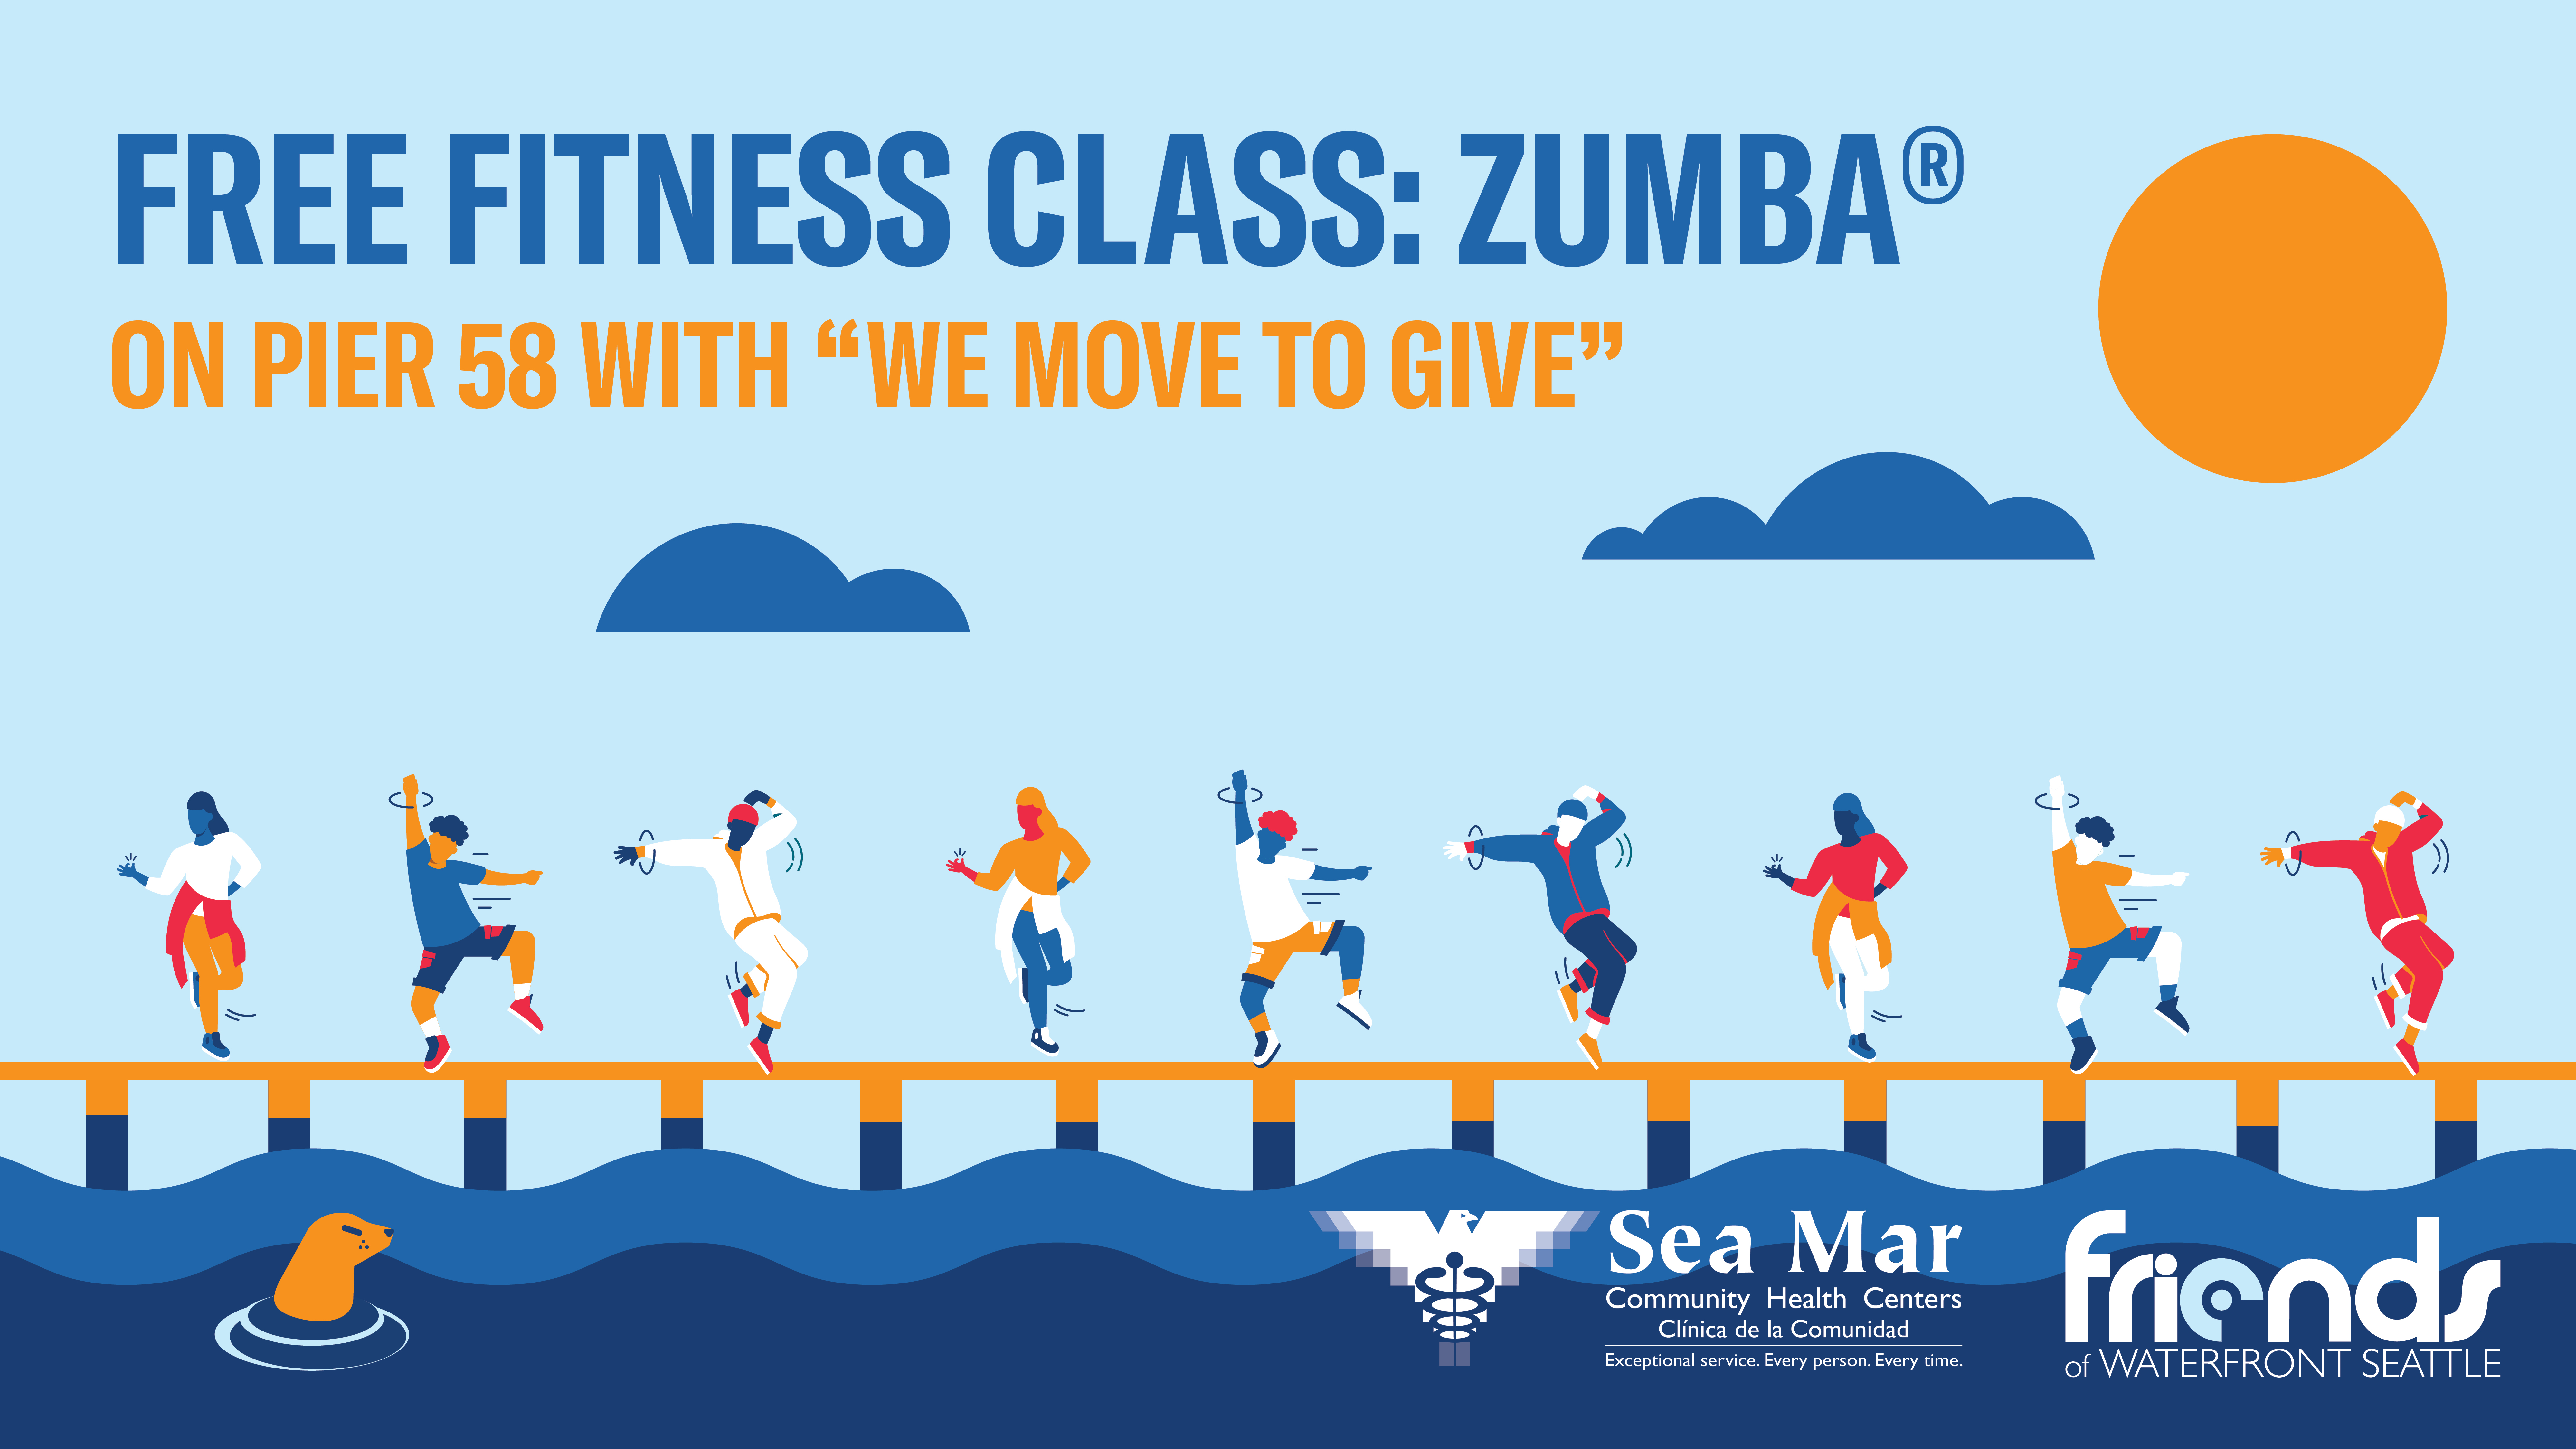 We Move to Give Zumba®